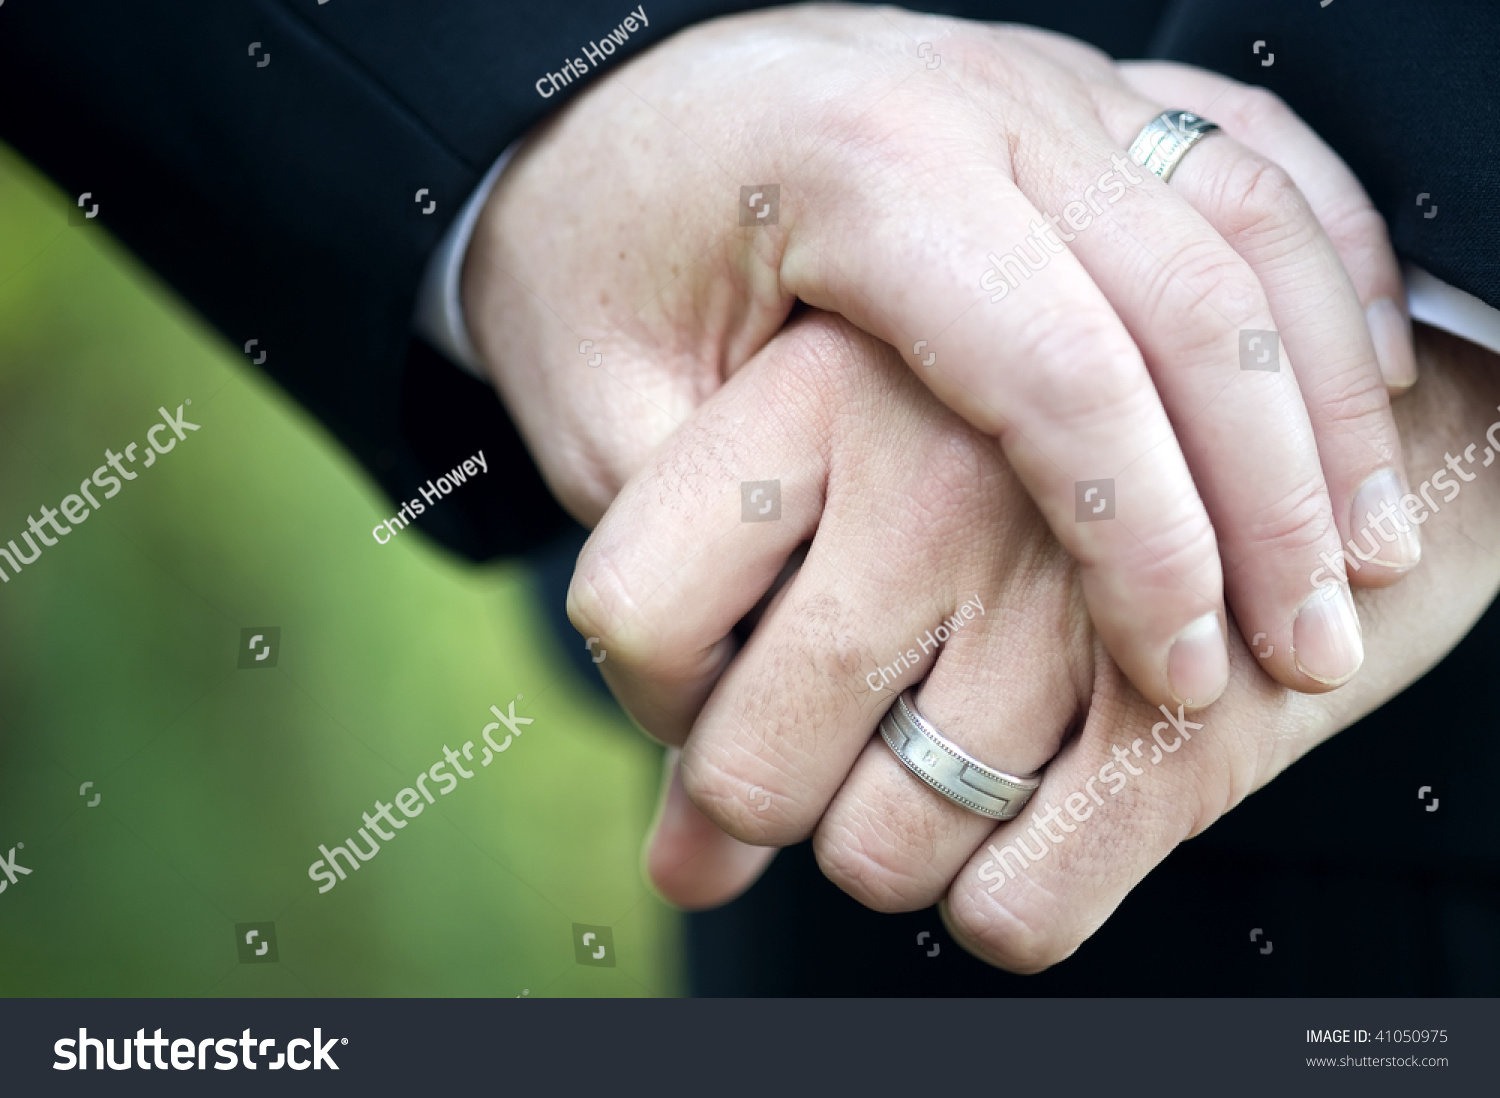 stock photo gay men and their wedding rings gay mens wedding rings Gay Men and their Wedding Rings